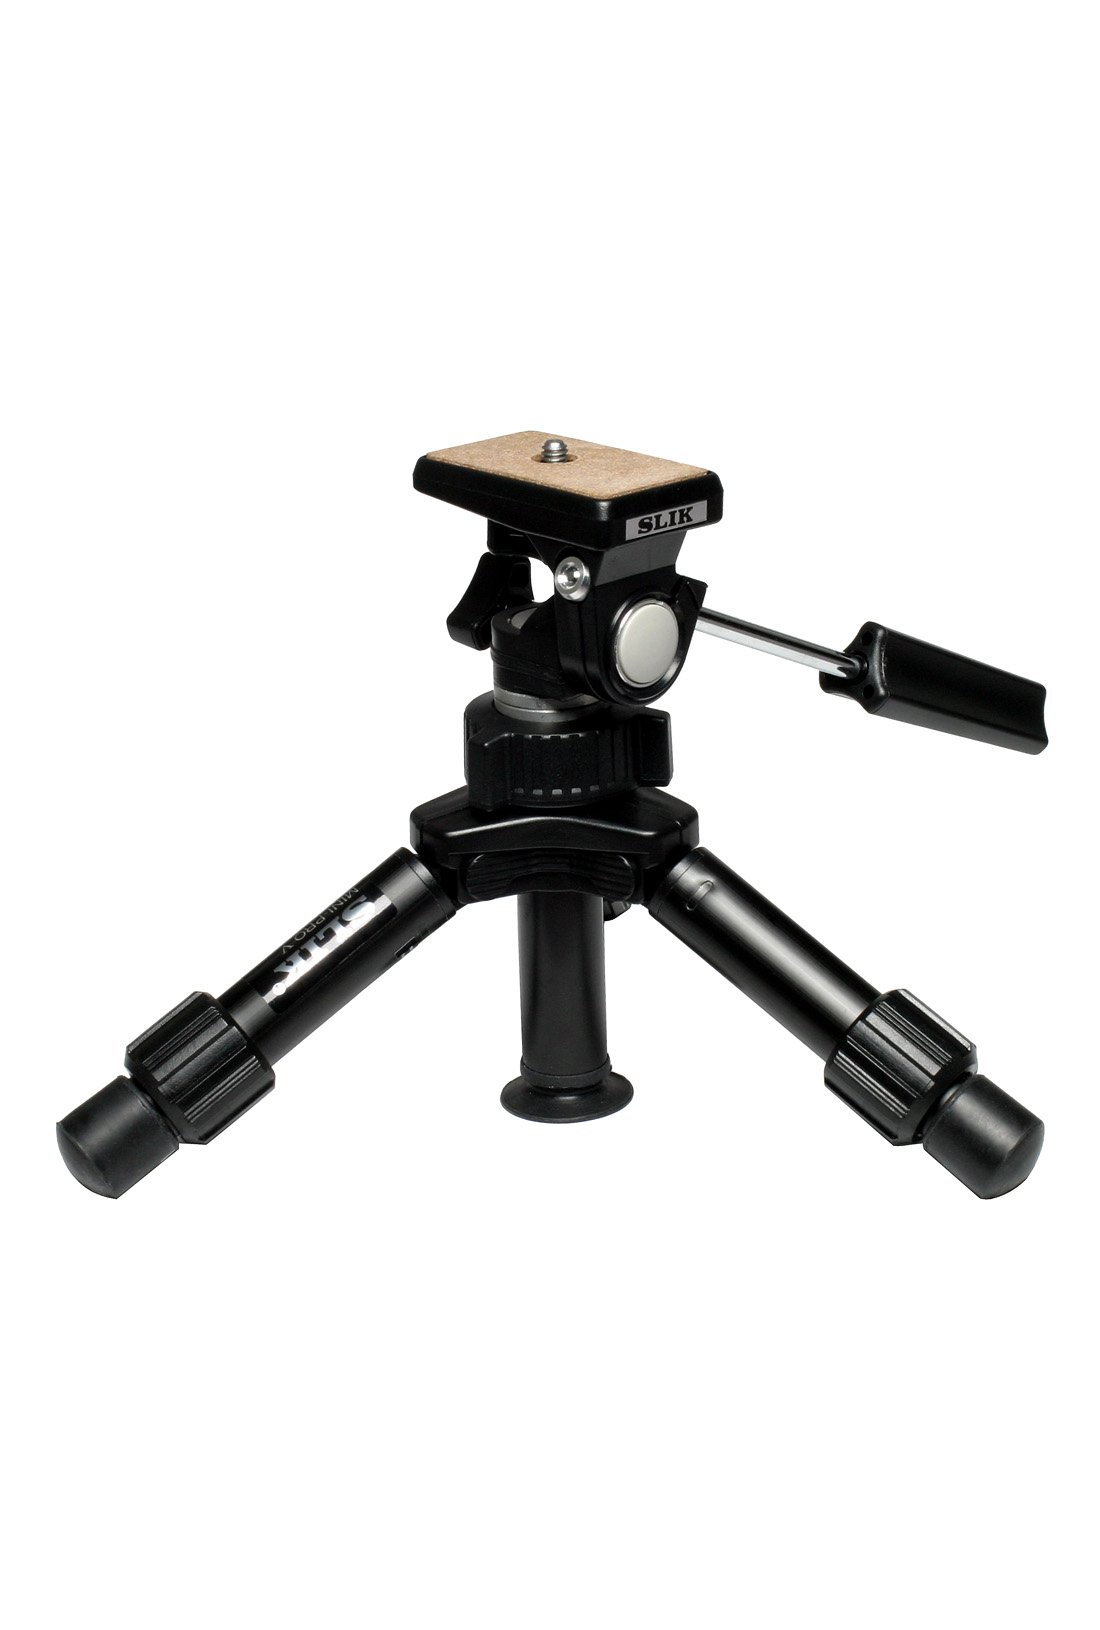 SLIK Mini-Pro V Tripod with 2-Way Pan/Tilt Head - Black by Slik